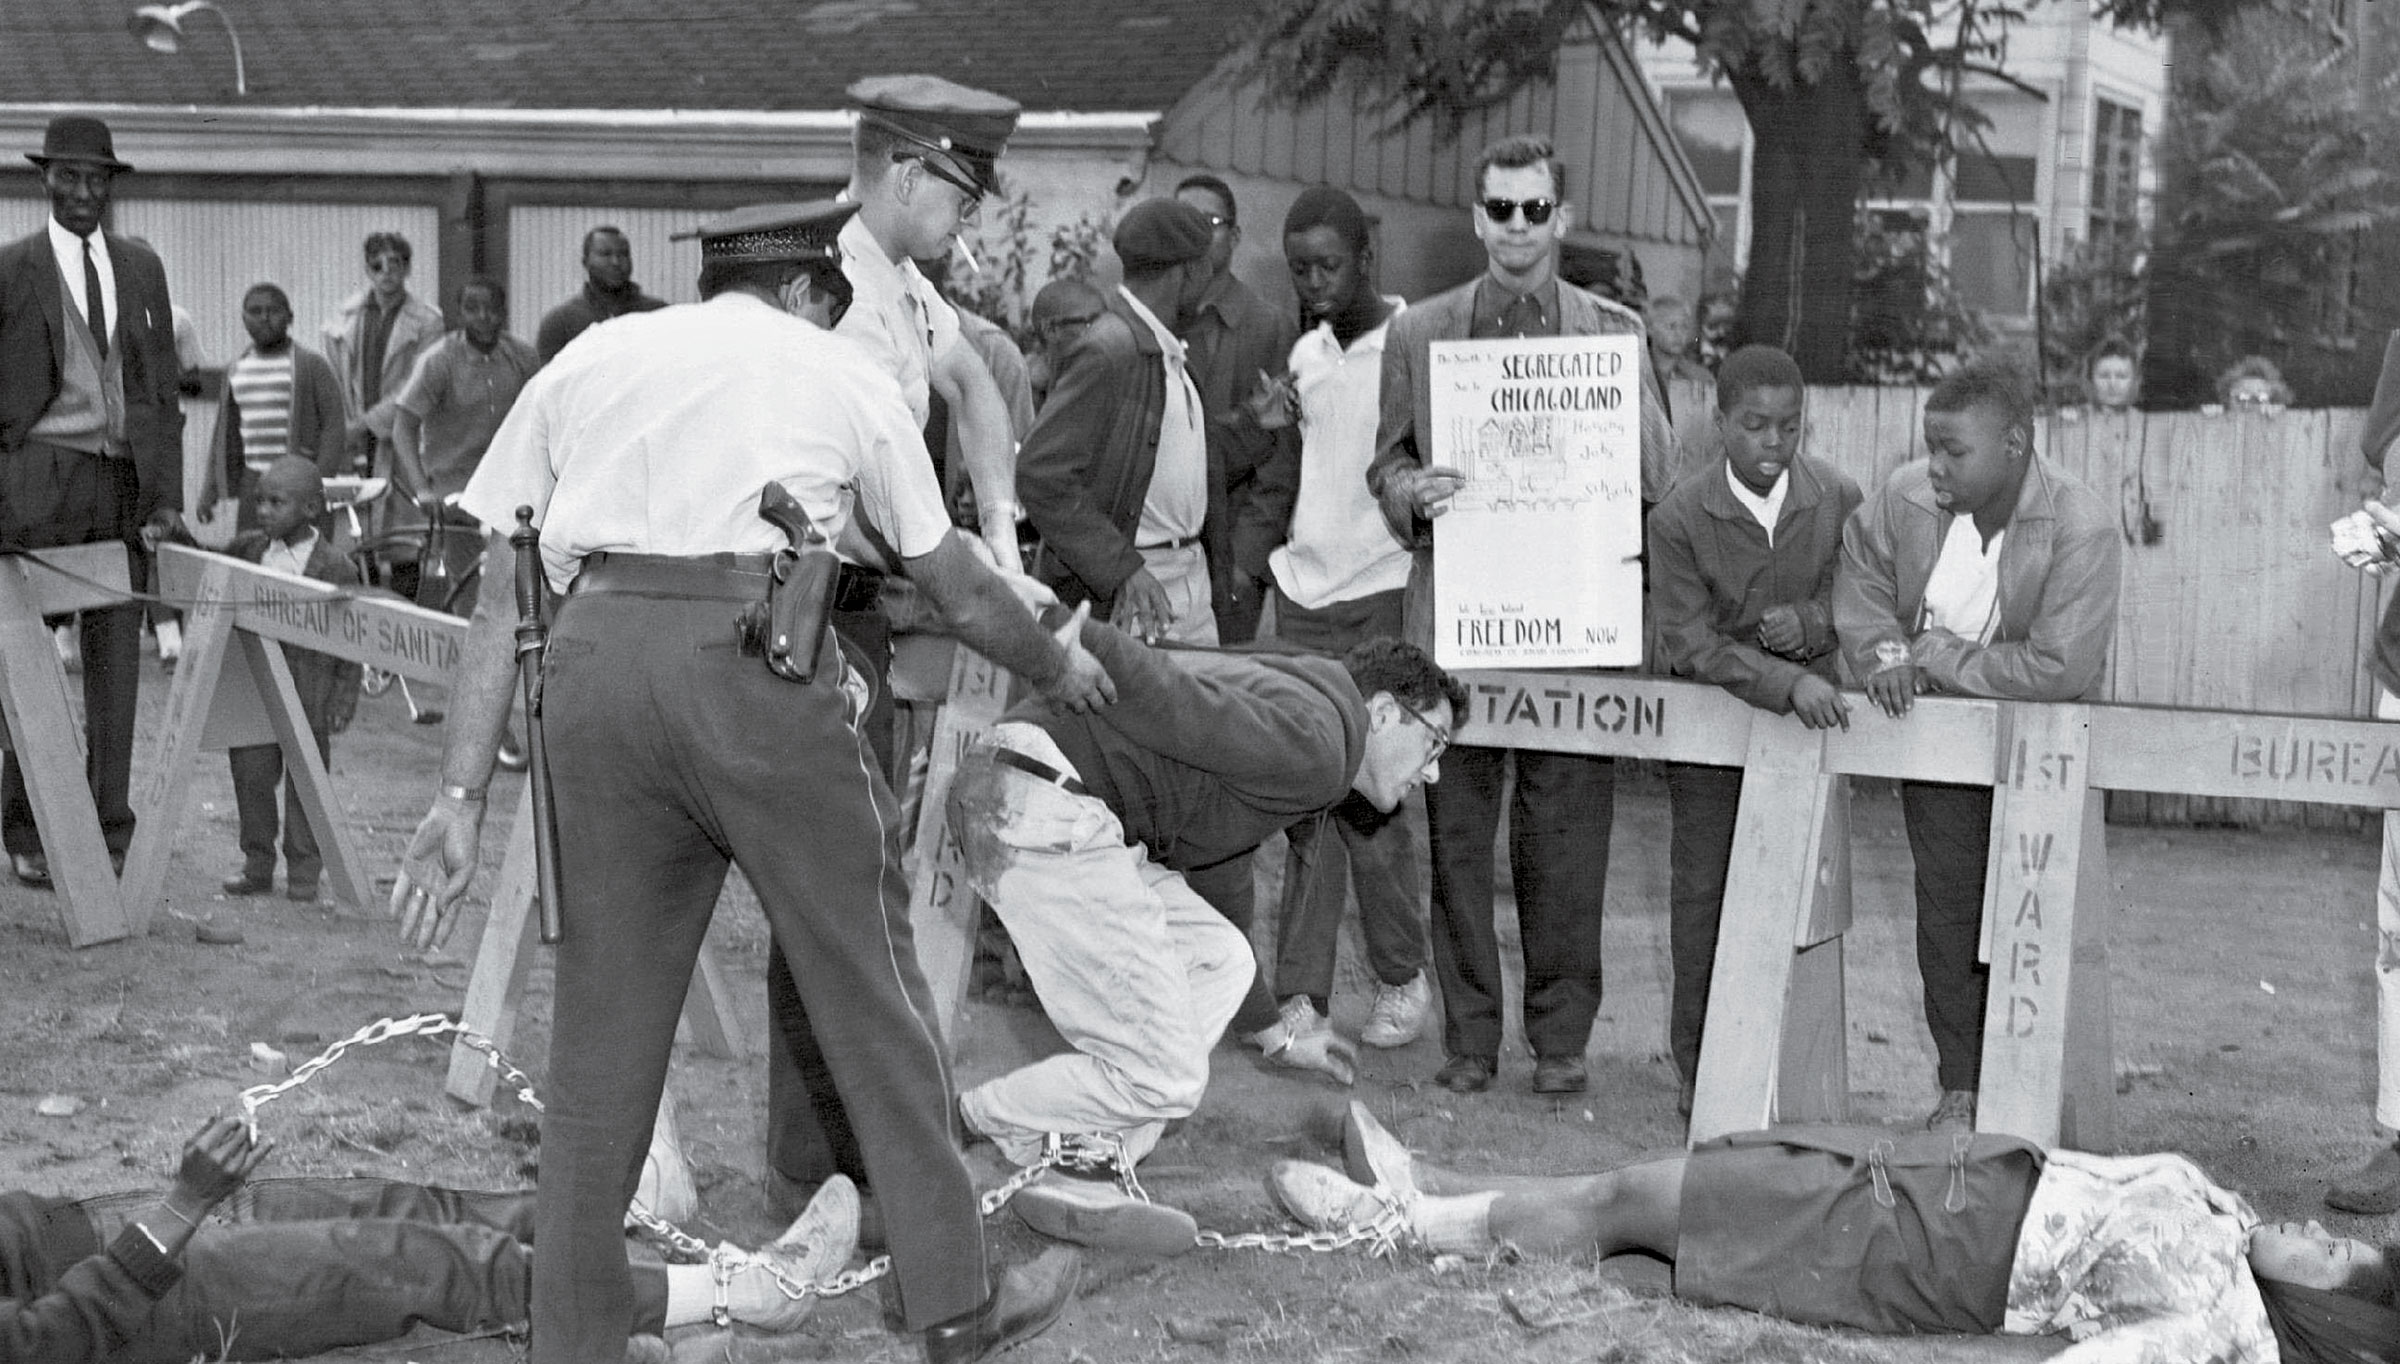 Sanders is arrested at a protest in Chicago in 1963